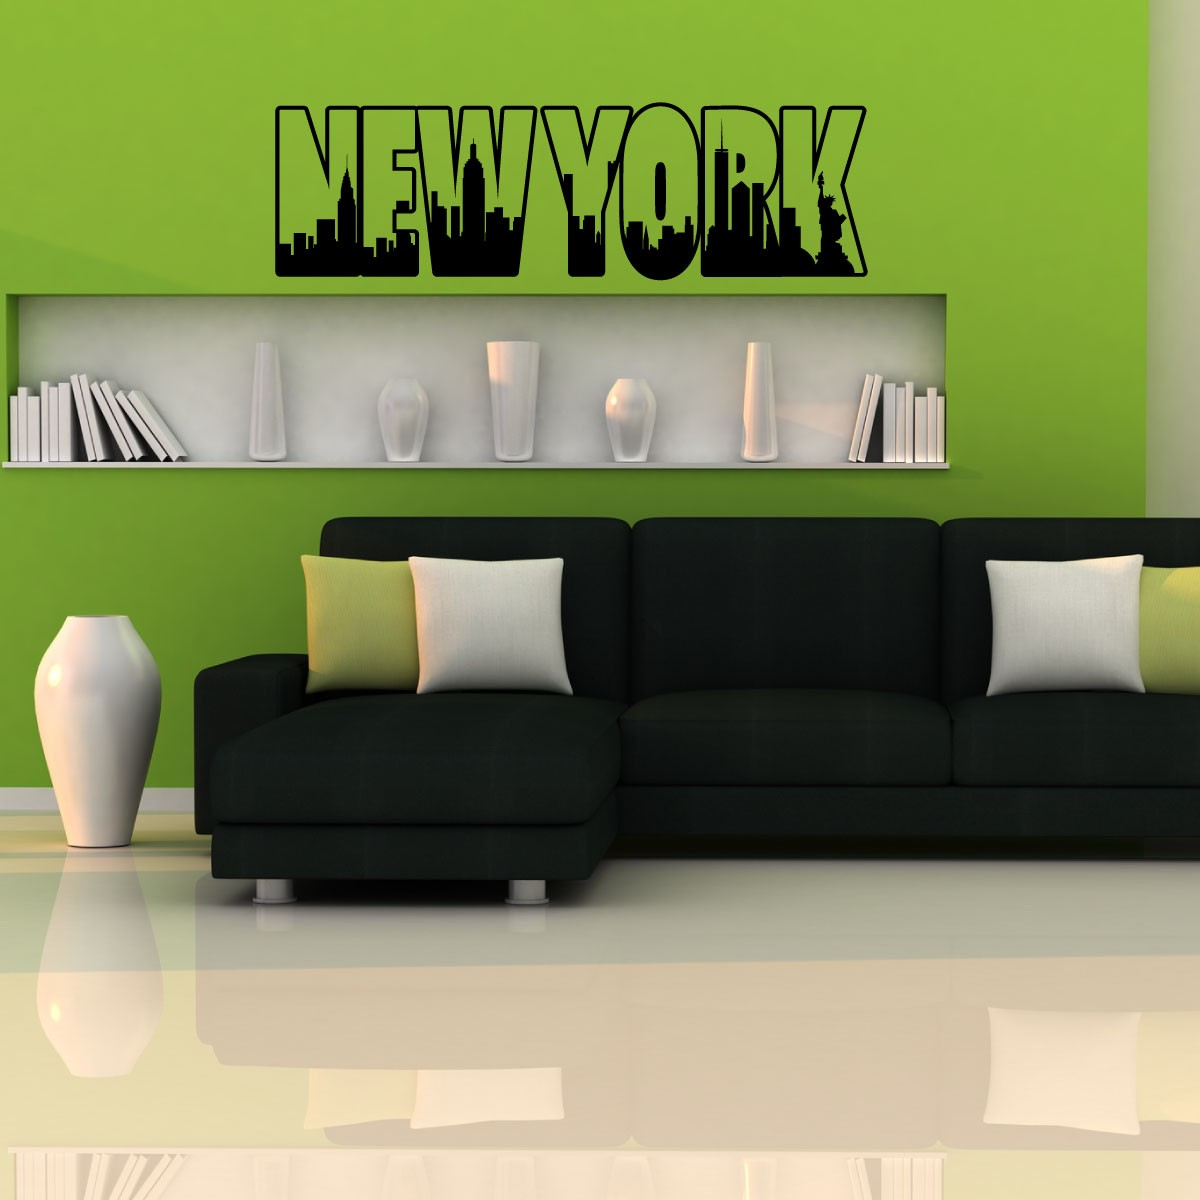 Wall decal new york letter frame cheap stickers world discount - Tete De Lit Orientale Stickers Wall Decal New York Letter Frame Cheap Stickers World Discount